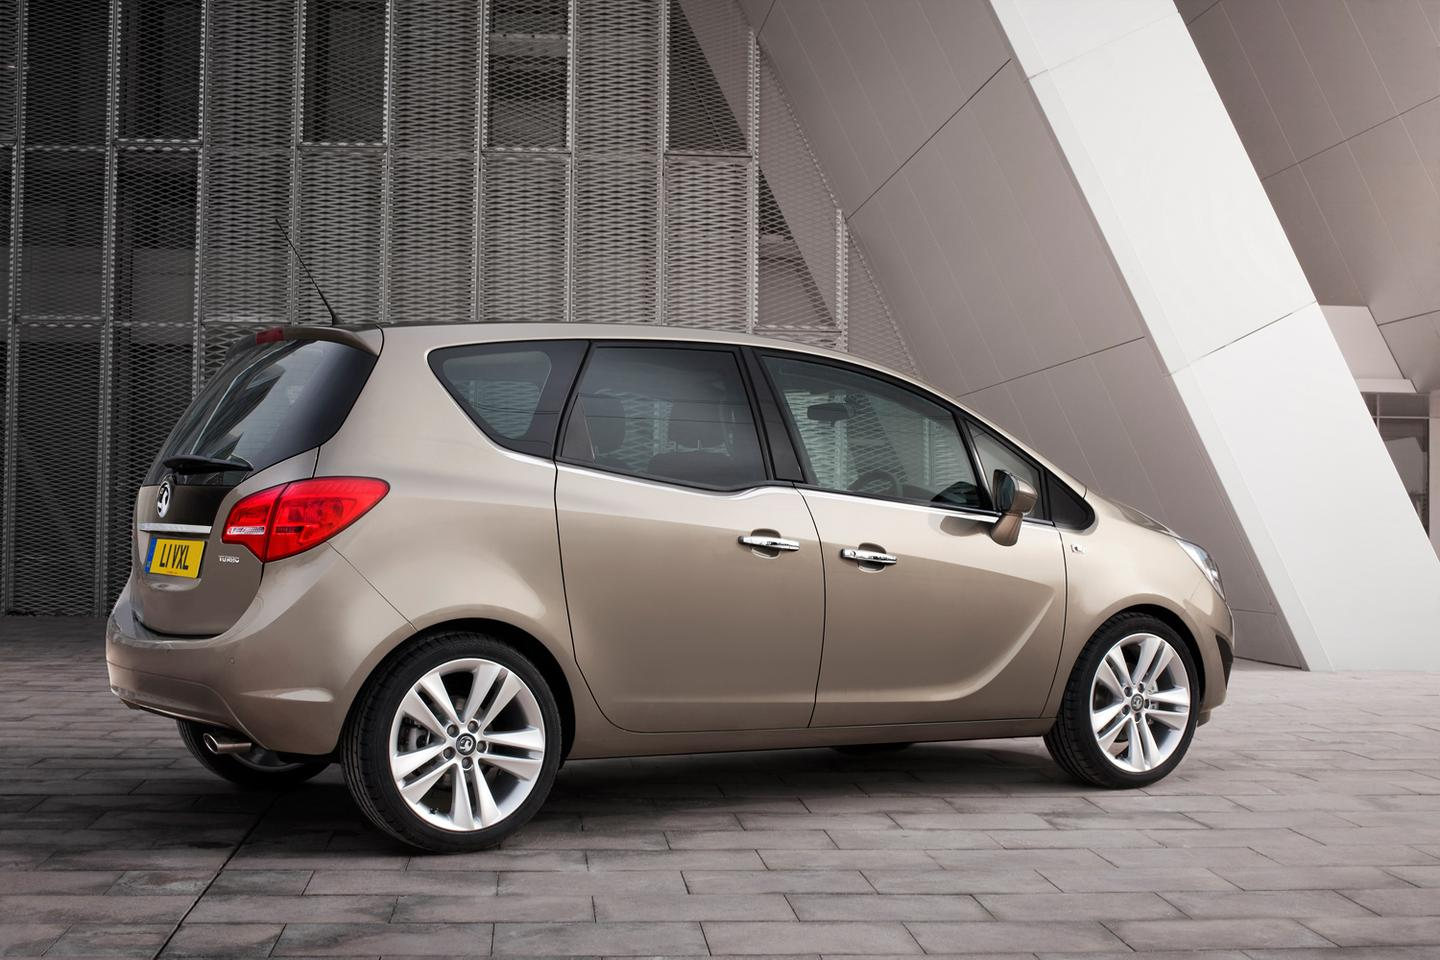 The 2010 Opel/Vauxhall Meriva